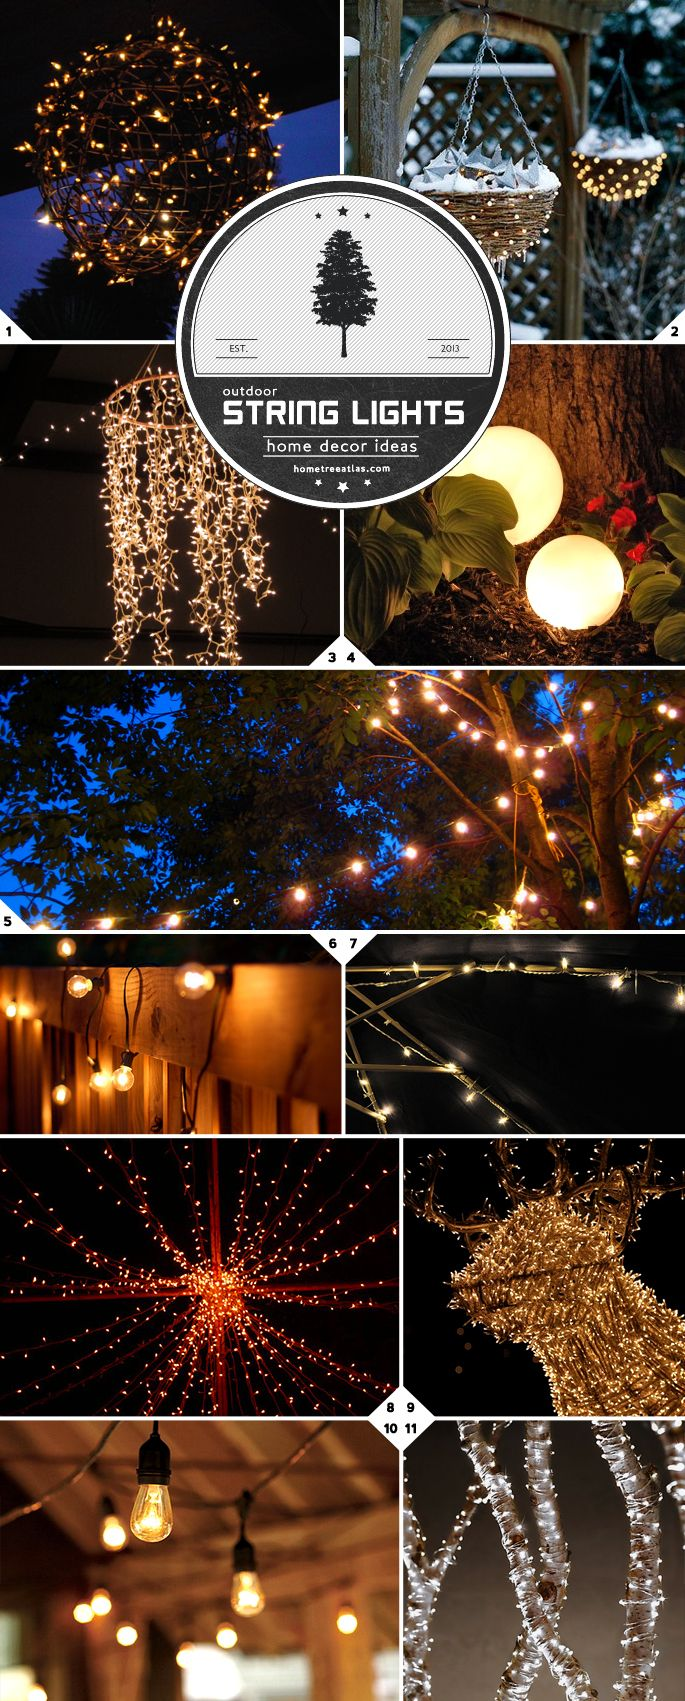 Outdoor Home Decor Ideas unusual containers and backyard ideas for decorating with flowers and plants Home Decor Ideas Creative Ways Of Using String Lights Outdoors